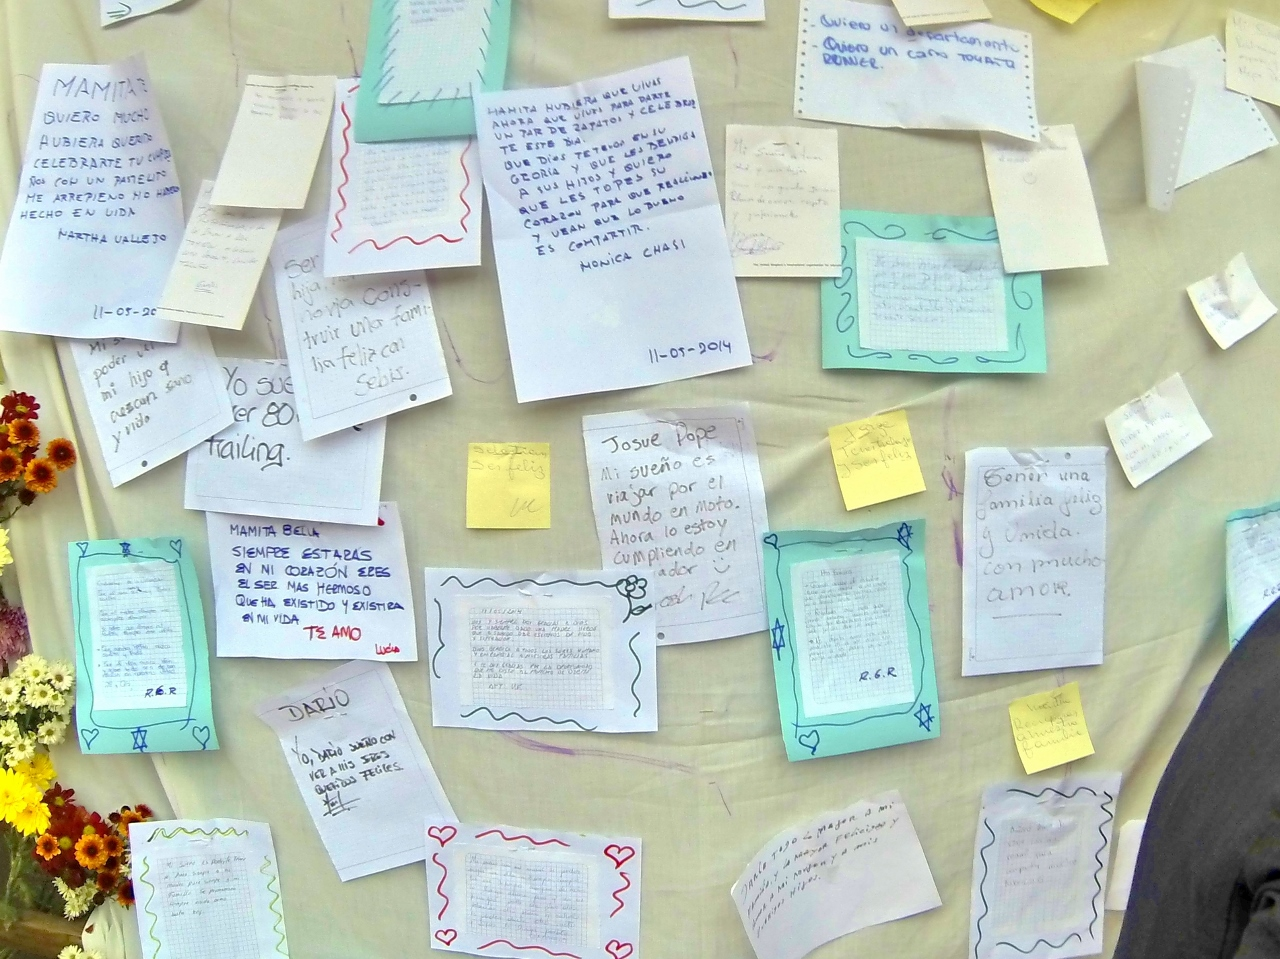 Found what looked like a wedding or family reunion in the park, but then I learned they were inviting anyone to write down your dream and post it to this wall